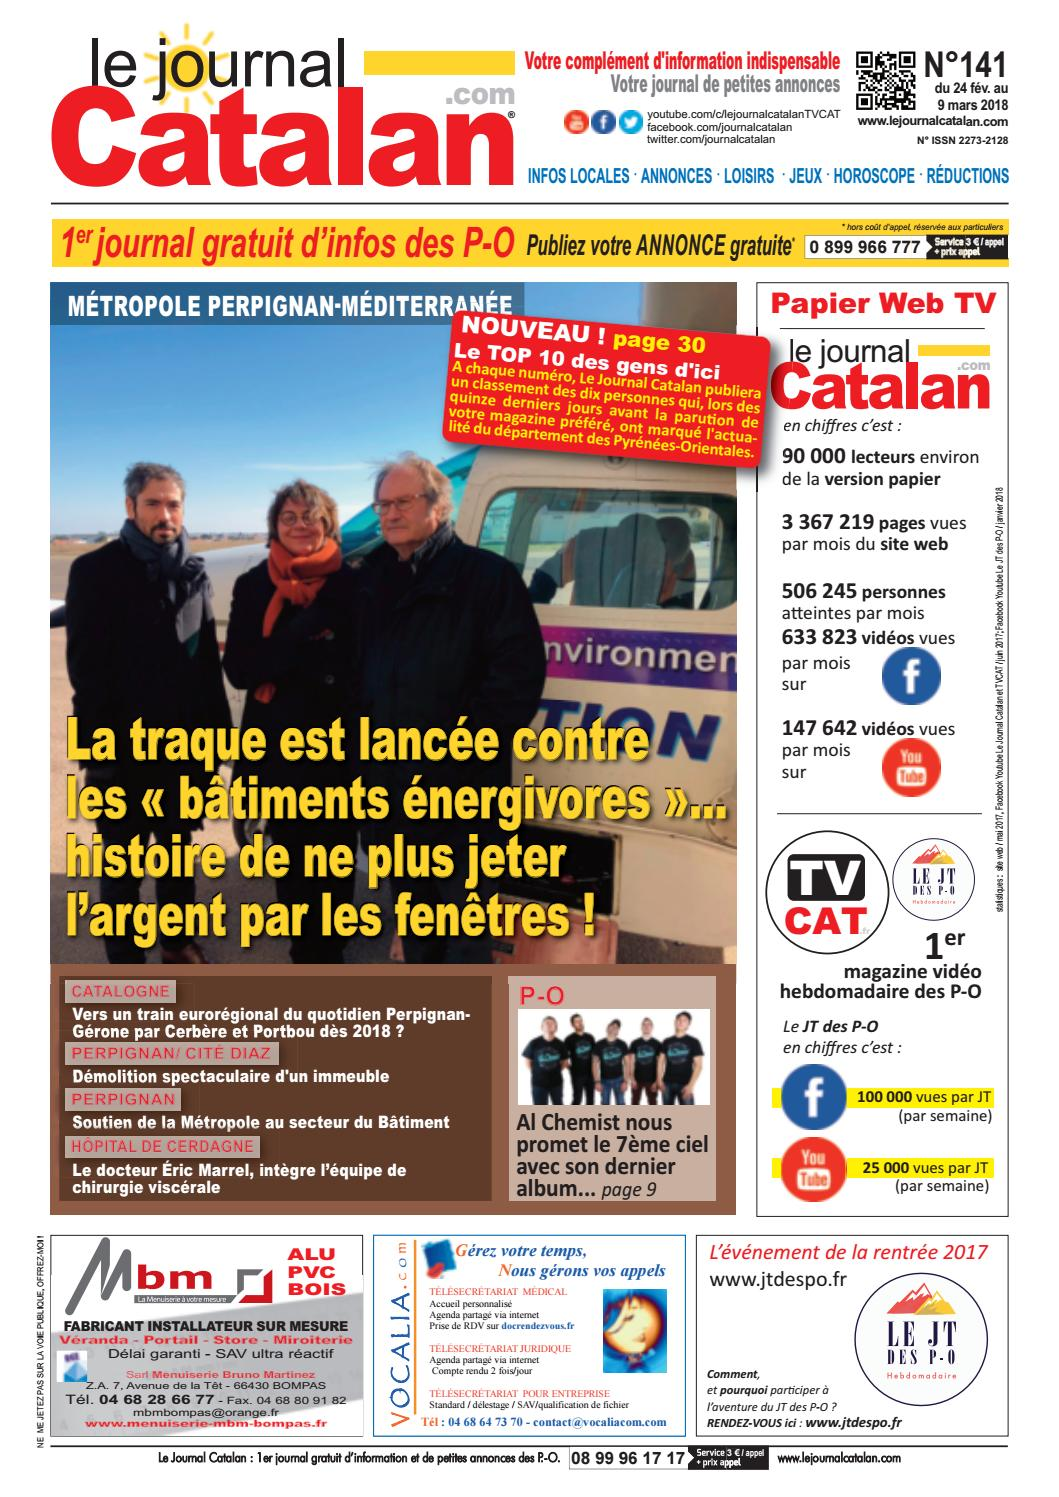 Le ° 141 N By Pyrénées Orientales Catalan Journal 4Rc3S5LAjq